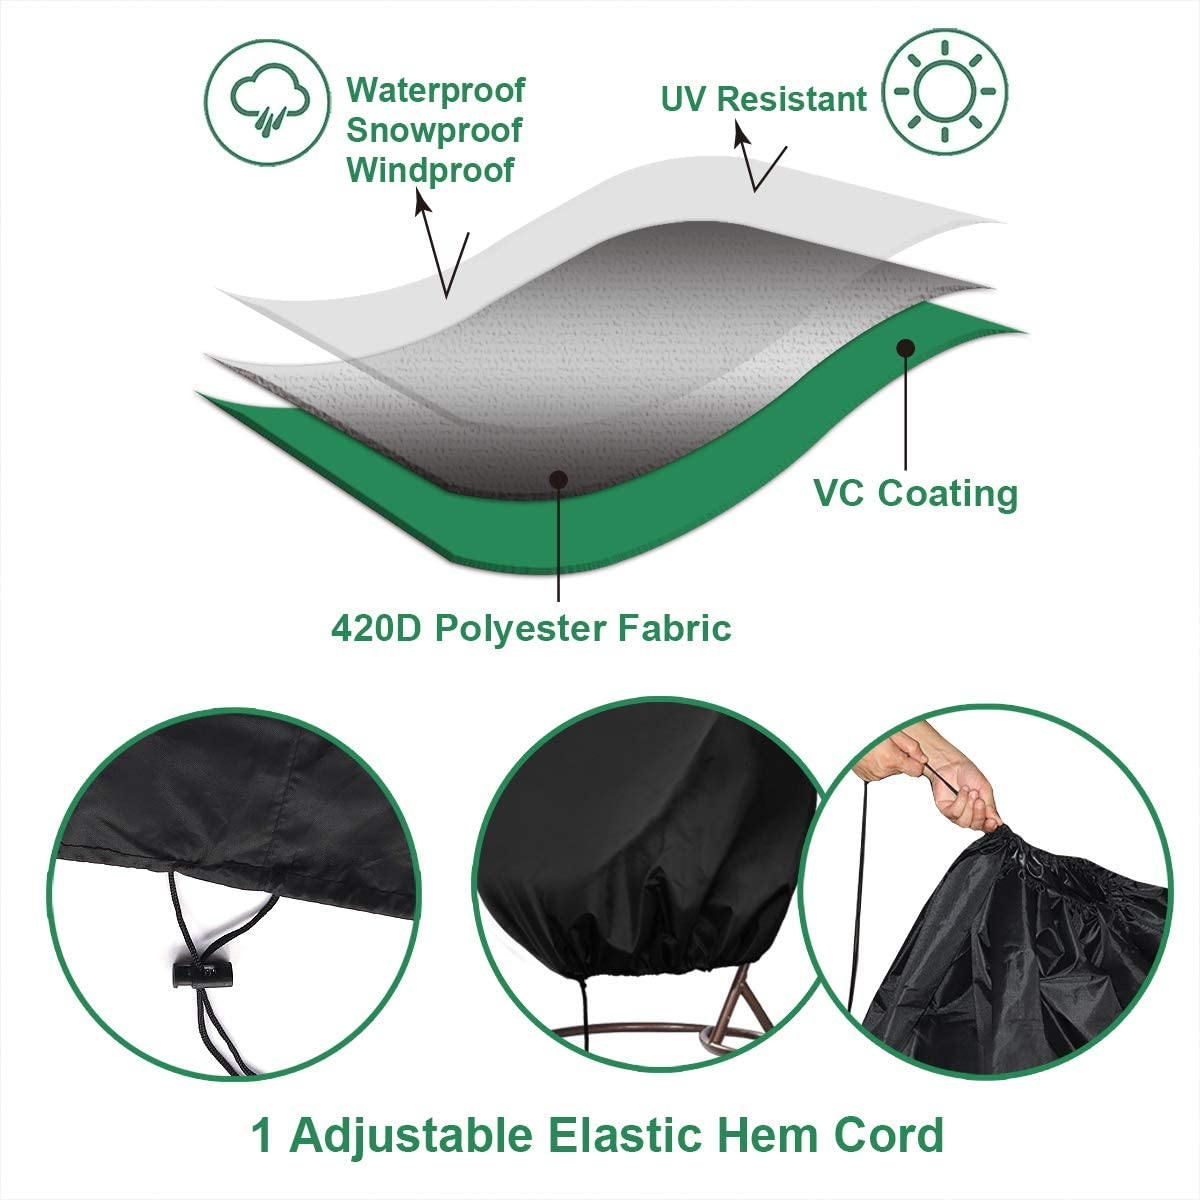 INMUA Patio Hanging Chair Cover Anti-UV Rattan Wicker Swing Chair Cover 190 x 115cm Waterproof Egg Chair Cover Rip Proof 420D Heavy Duty Oxford Fabric Windproof